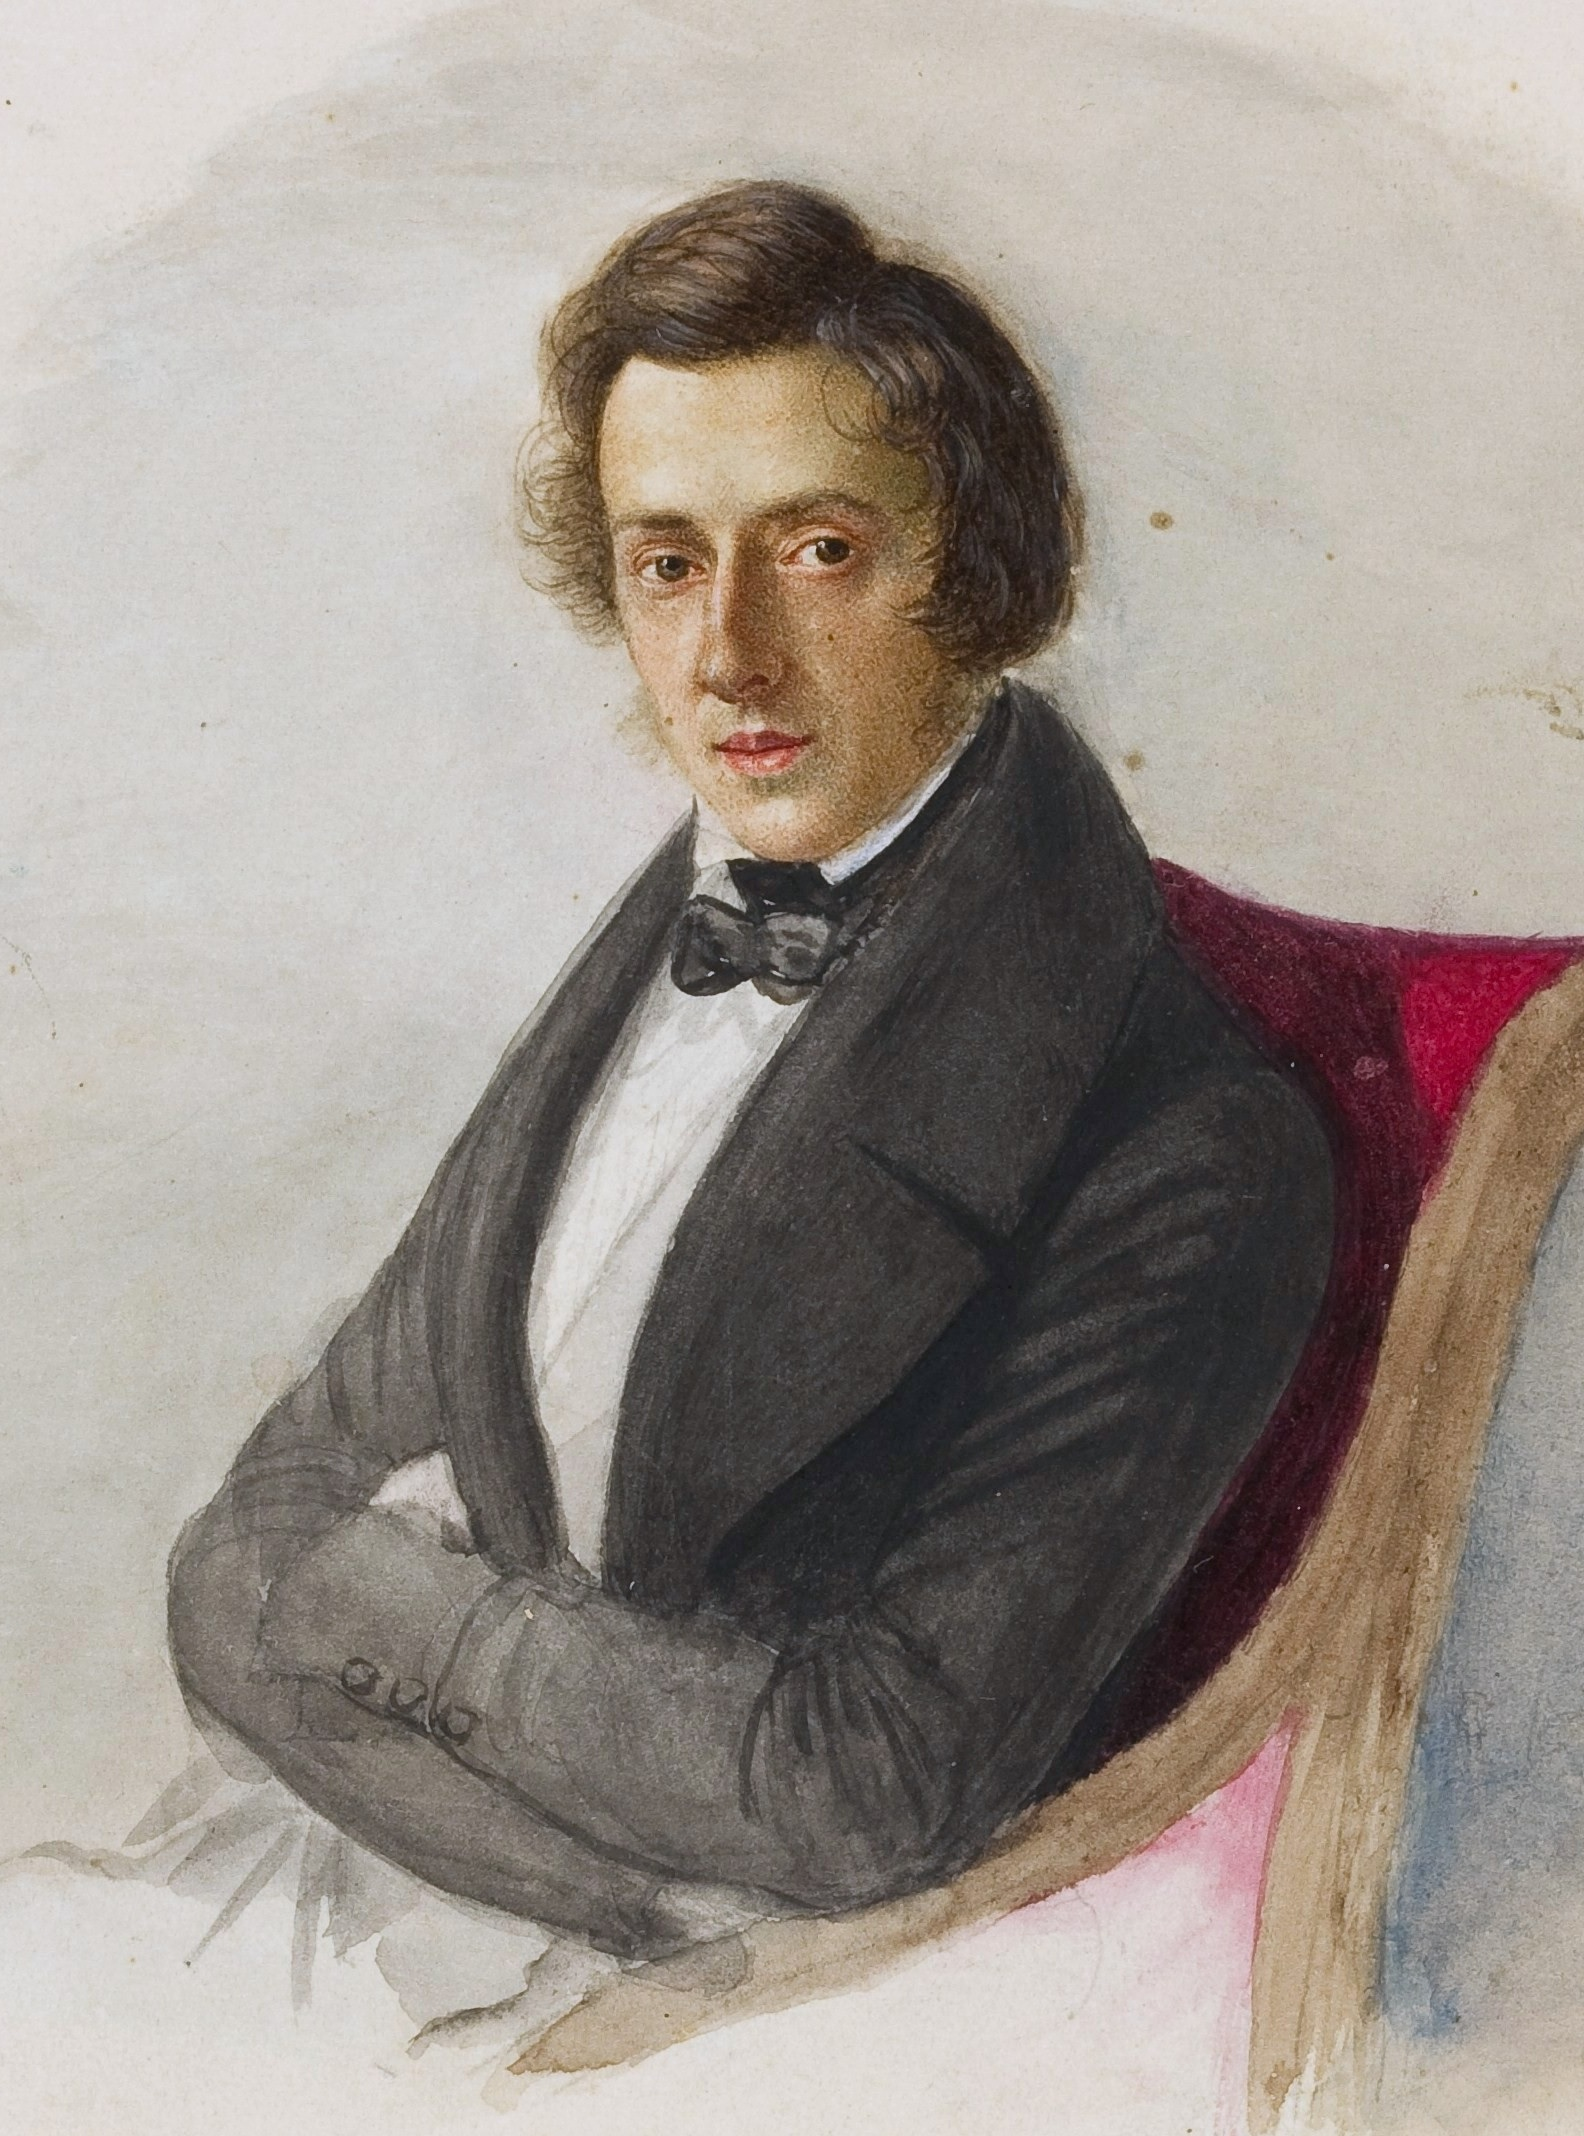 File:Chopin, by Wodzinska.JPG - Wikipedia